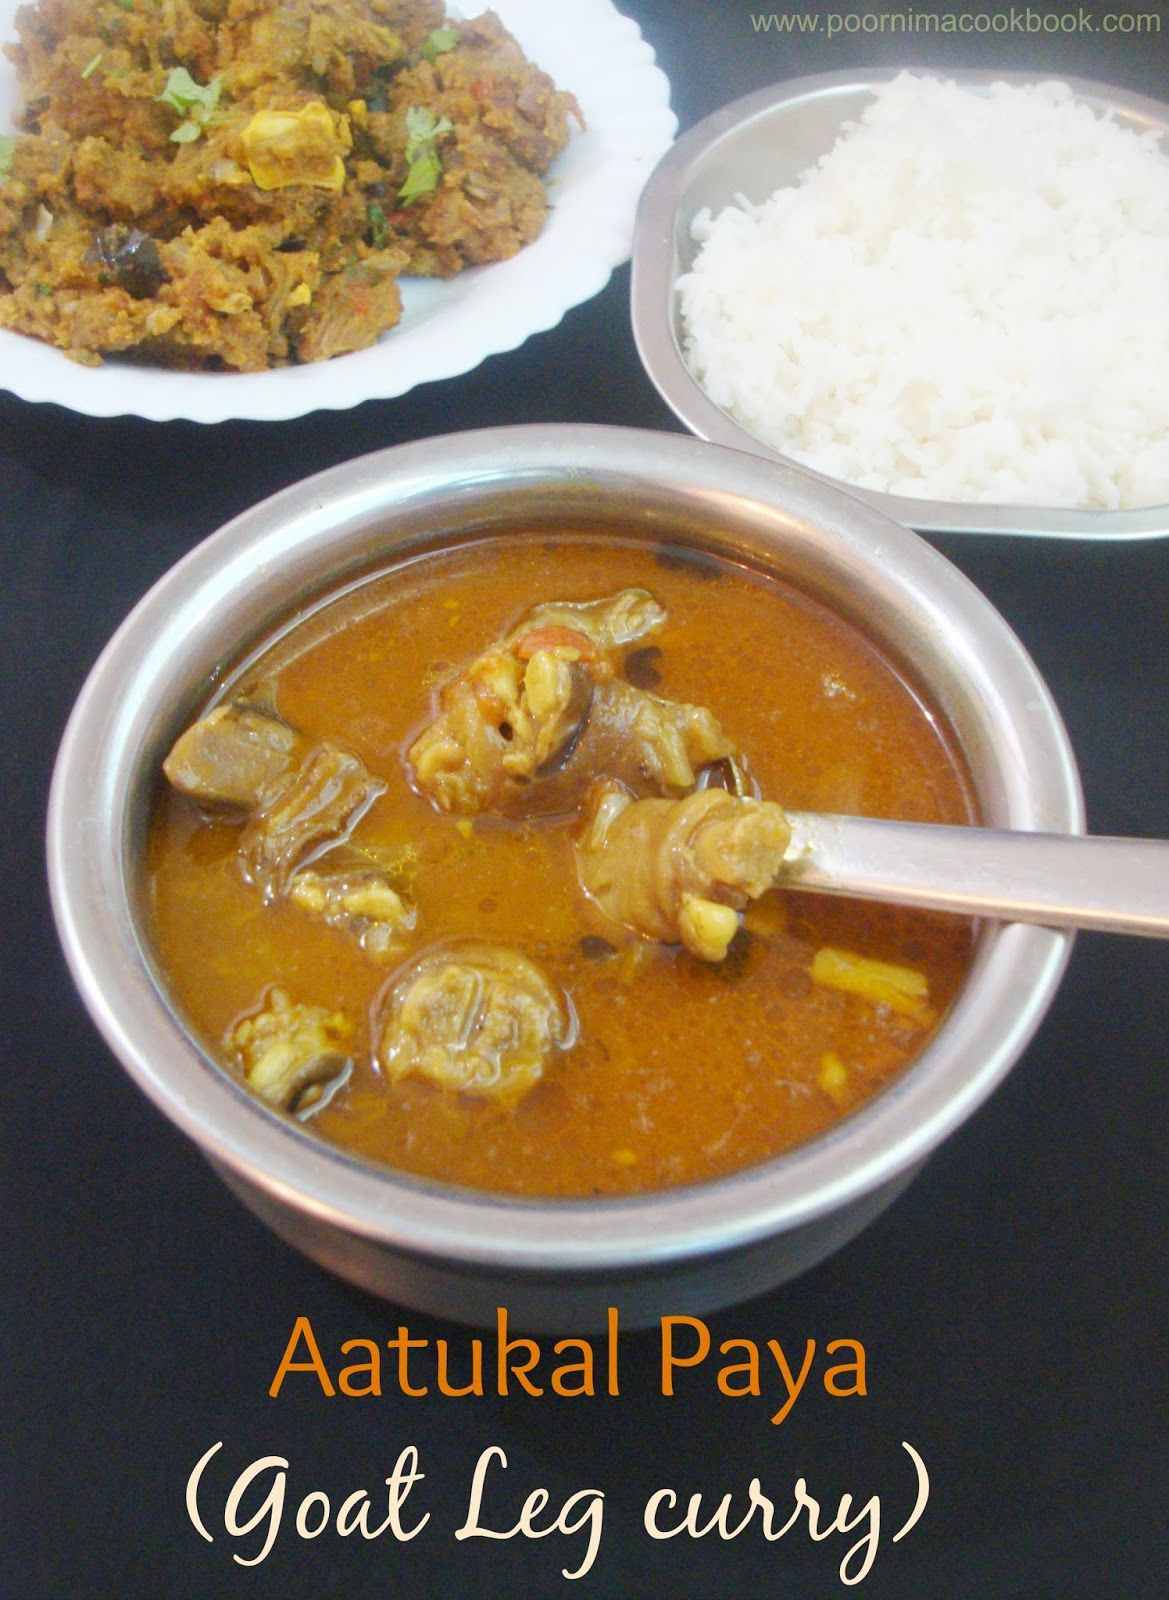 Aatukal Paya (Goat Leg curry) Amma's special (With